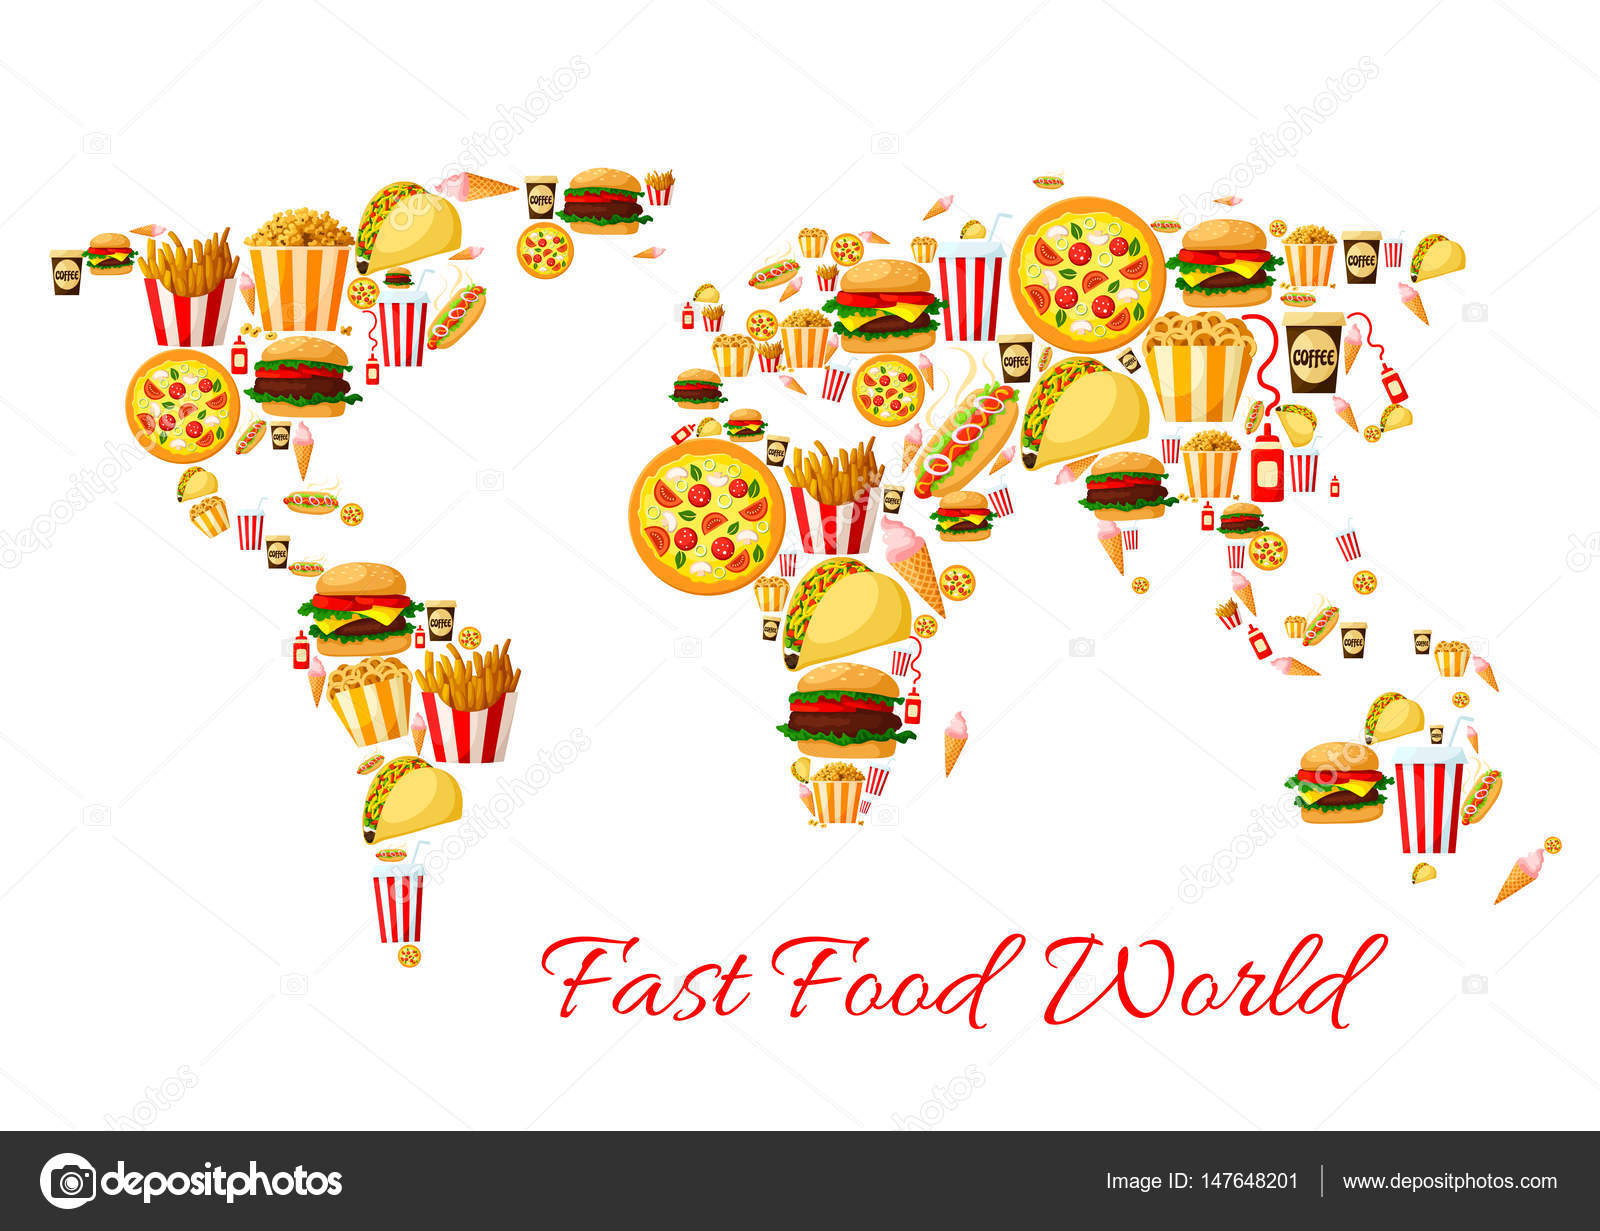 Fast food world map cartoon poster design stock vector fast food world map cartoon poster design stock vector gumiabroncs Choice Image